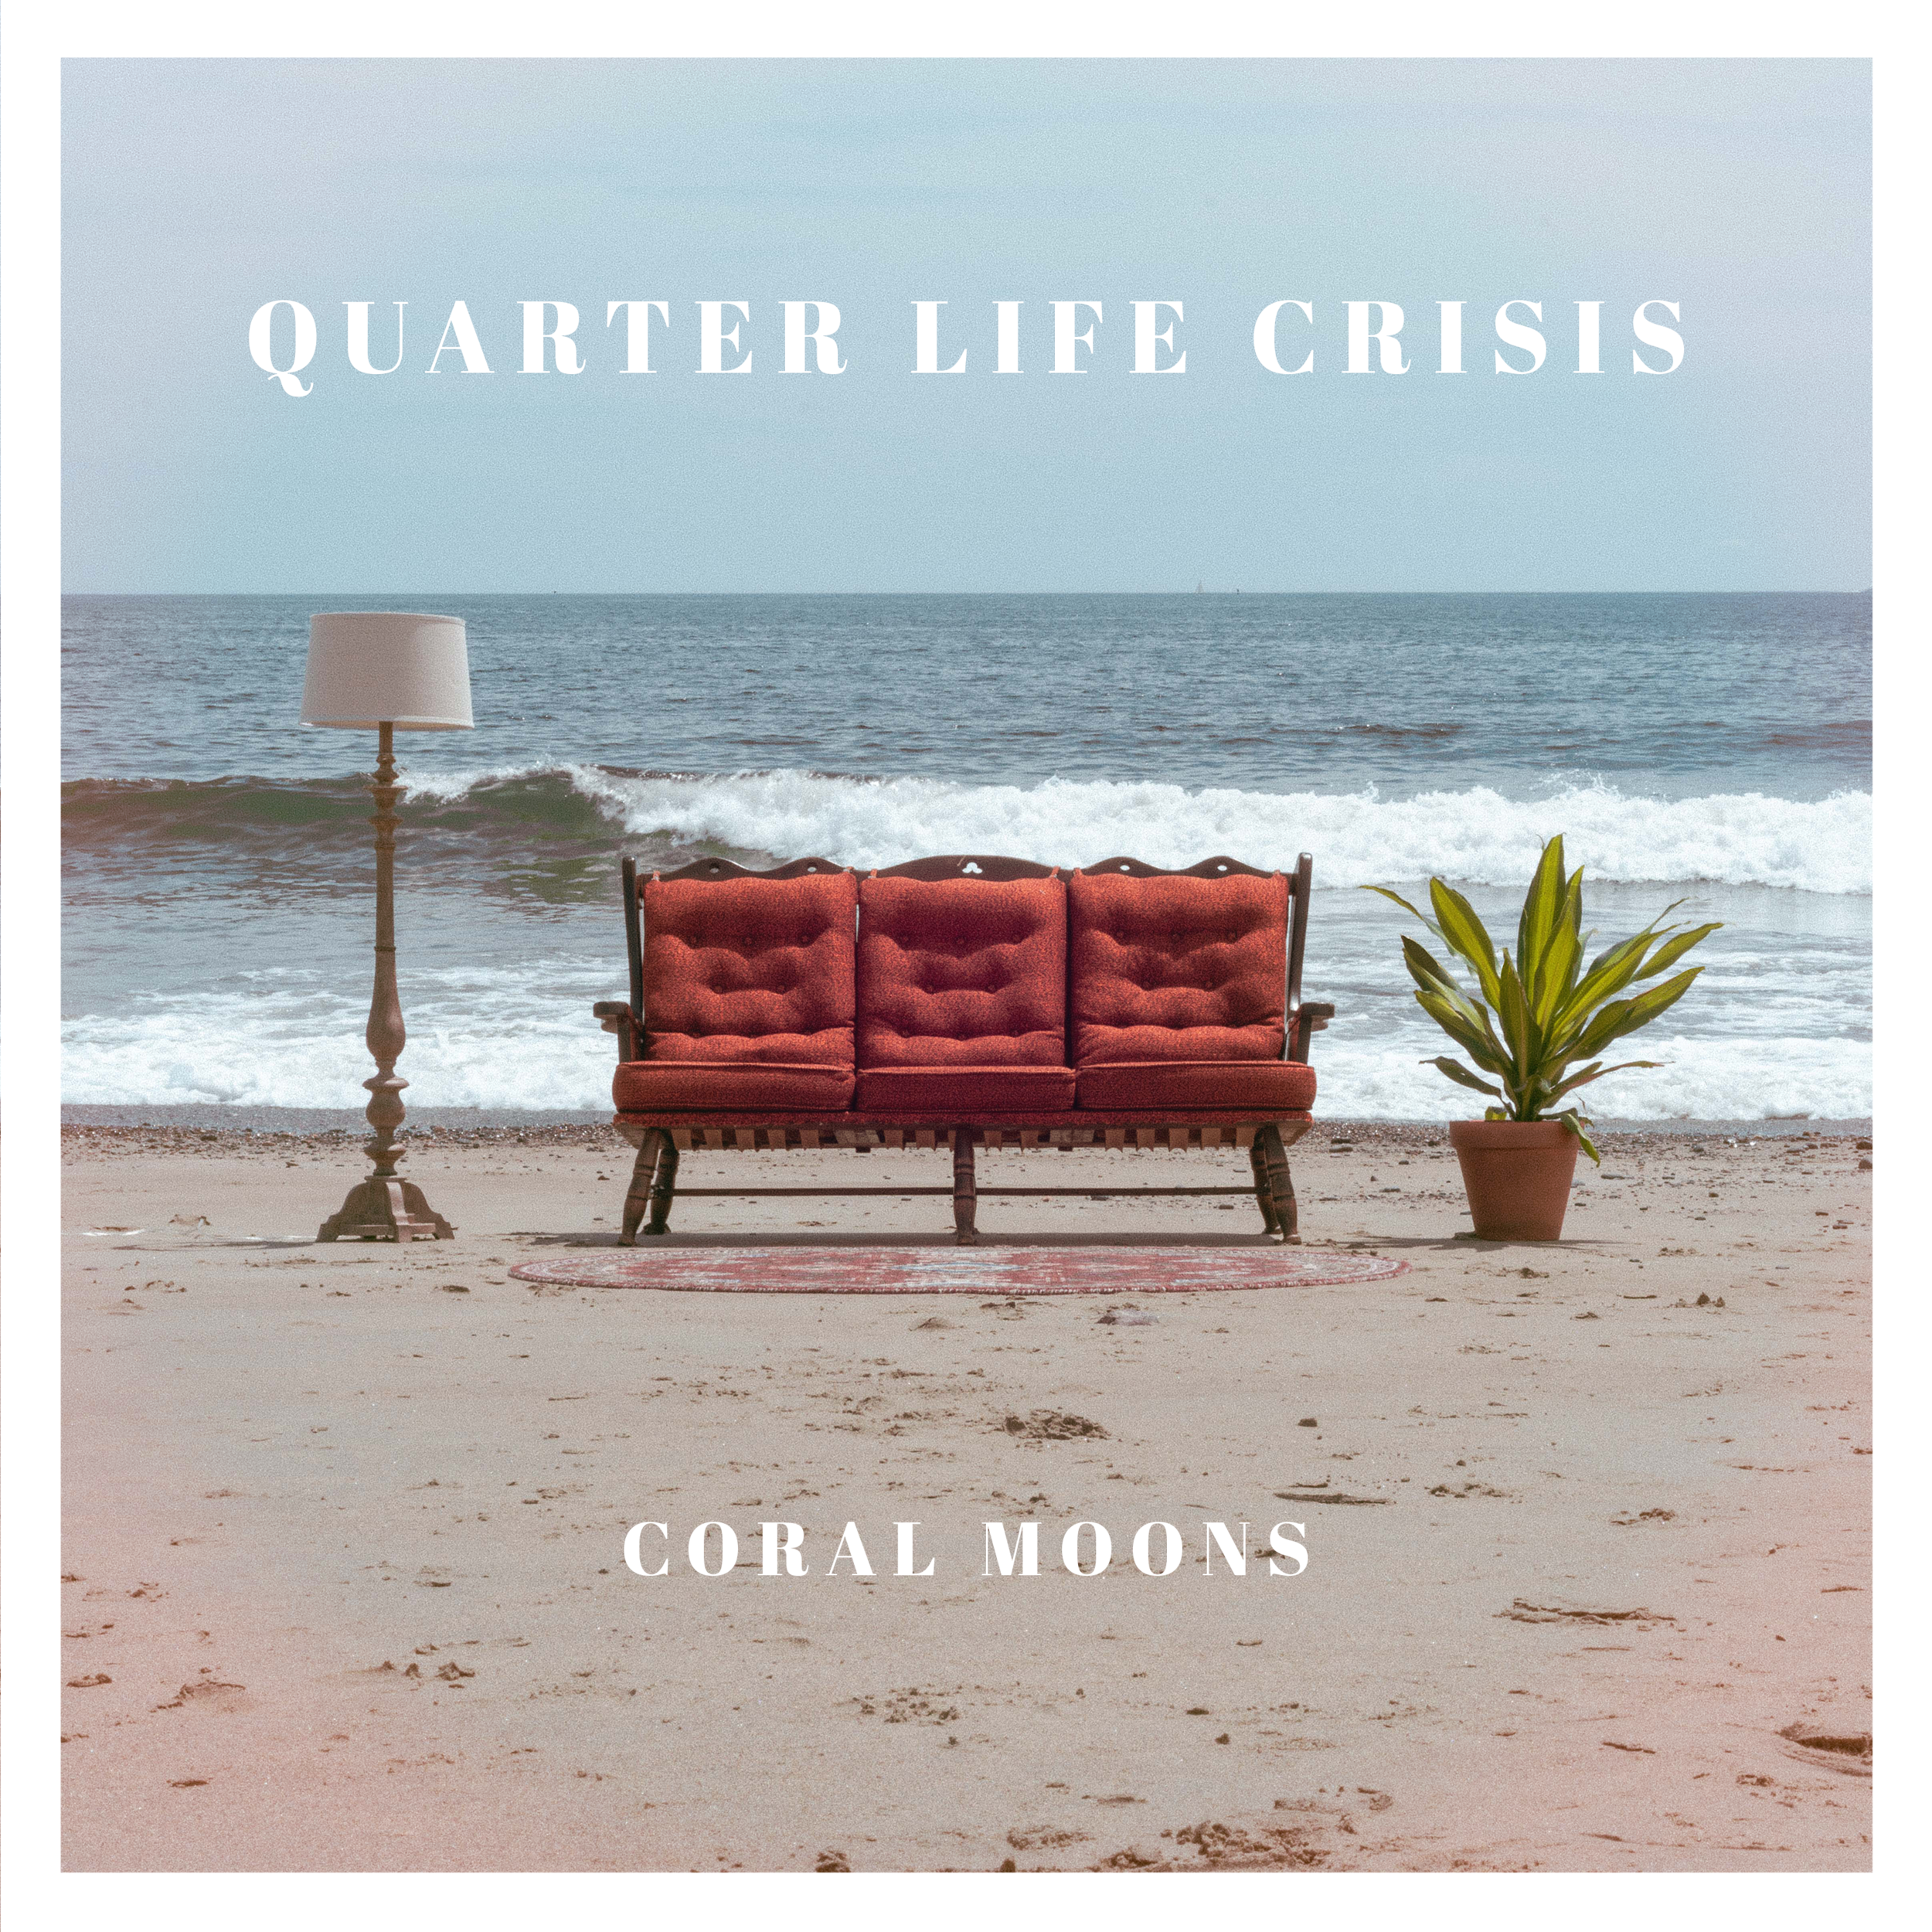 Debut EP: Quarter Life Crisis - Release Date: September 12th, 2019Label: Self-releasedGenre: Retro-Rock // Classic PopHometown: Boston, MAInfluences: Lake Street Dive, Tedeschi Trucks, Alabama Shakes, The Eagles, Maggie Rogers, Amy Winehouse, The Allman BrothersSinger-Songwriter: Carly KraftBass: Manuel CamachoGuitar: Justin BartlettDrums: Kevin O'Connell